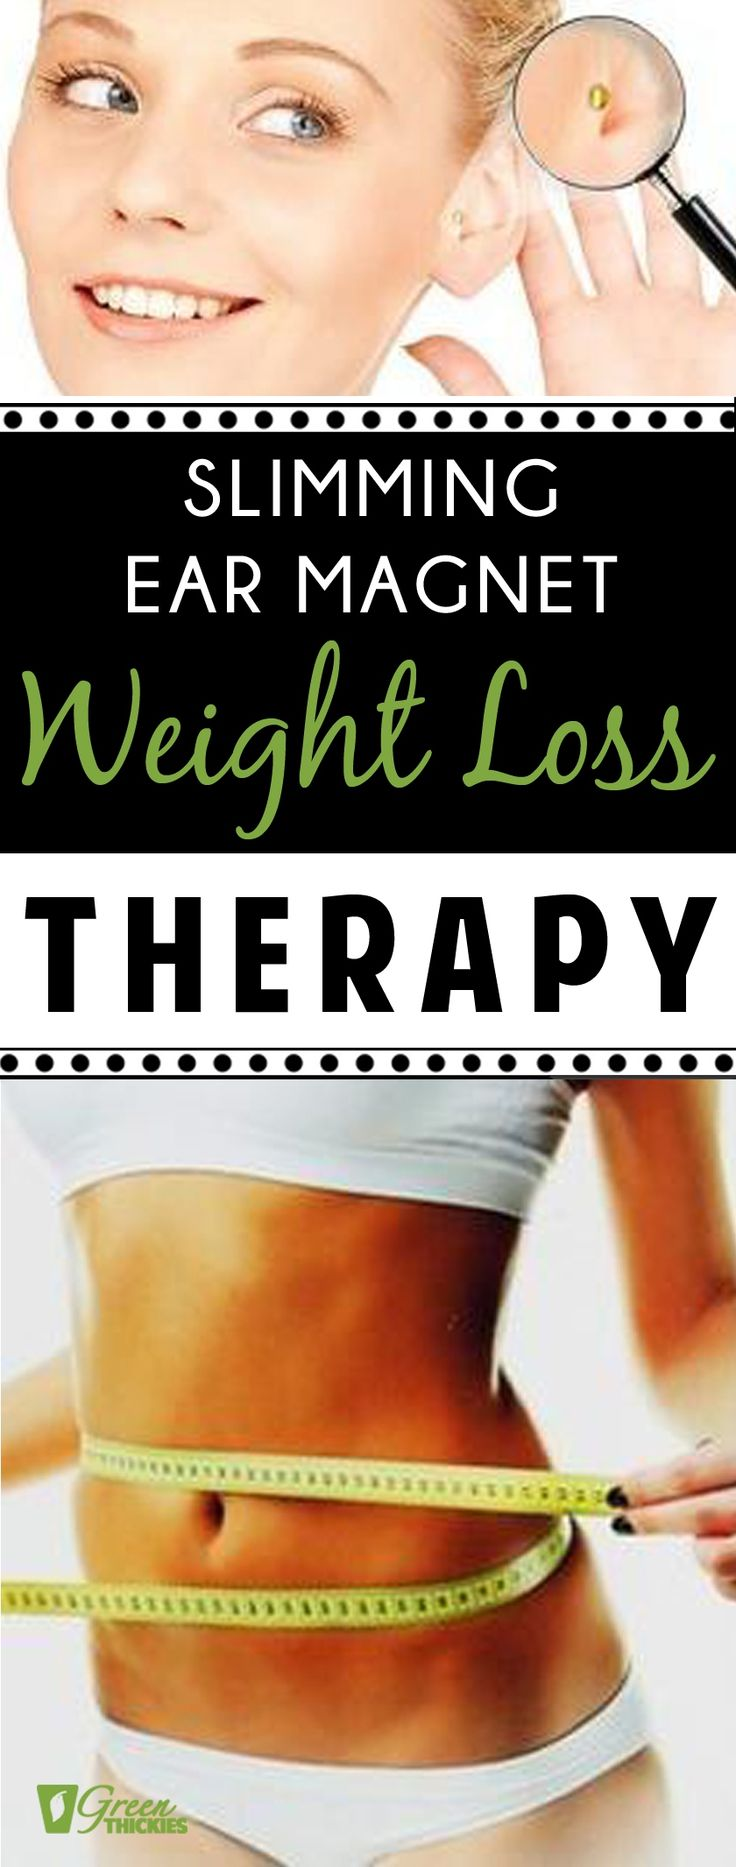 34 best green smoothie books and courses images on pinterest green get 70 off this slimming ear magnet weight loss therapy today only get a fandeluxe Image collections